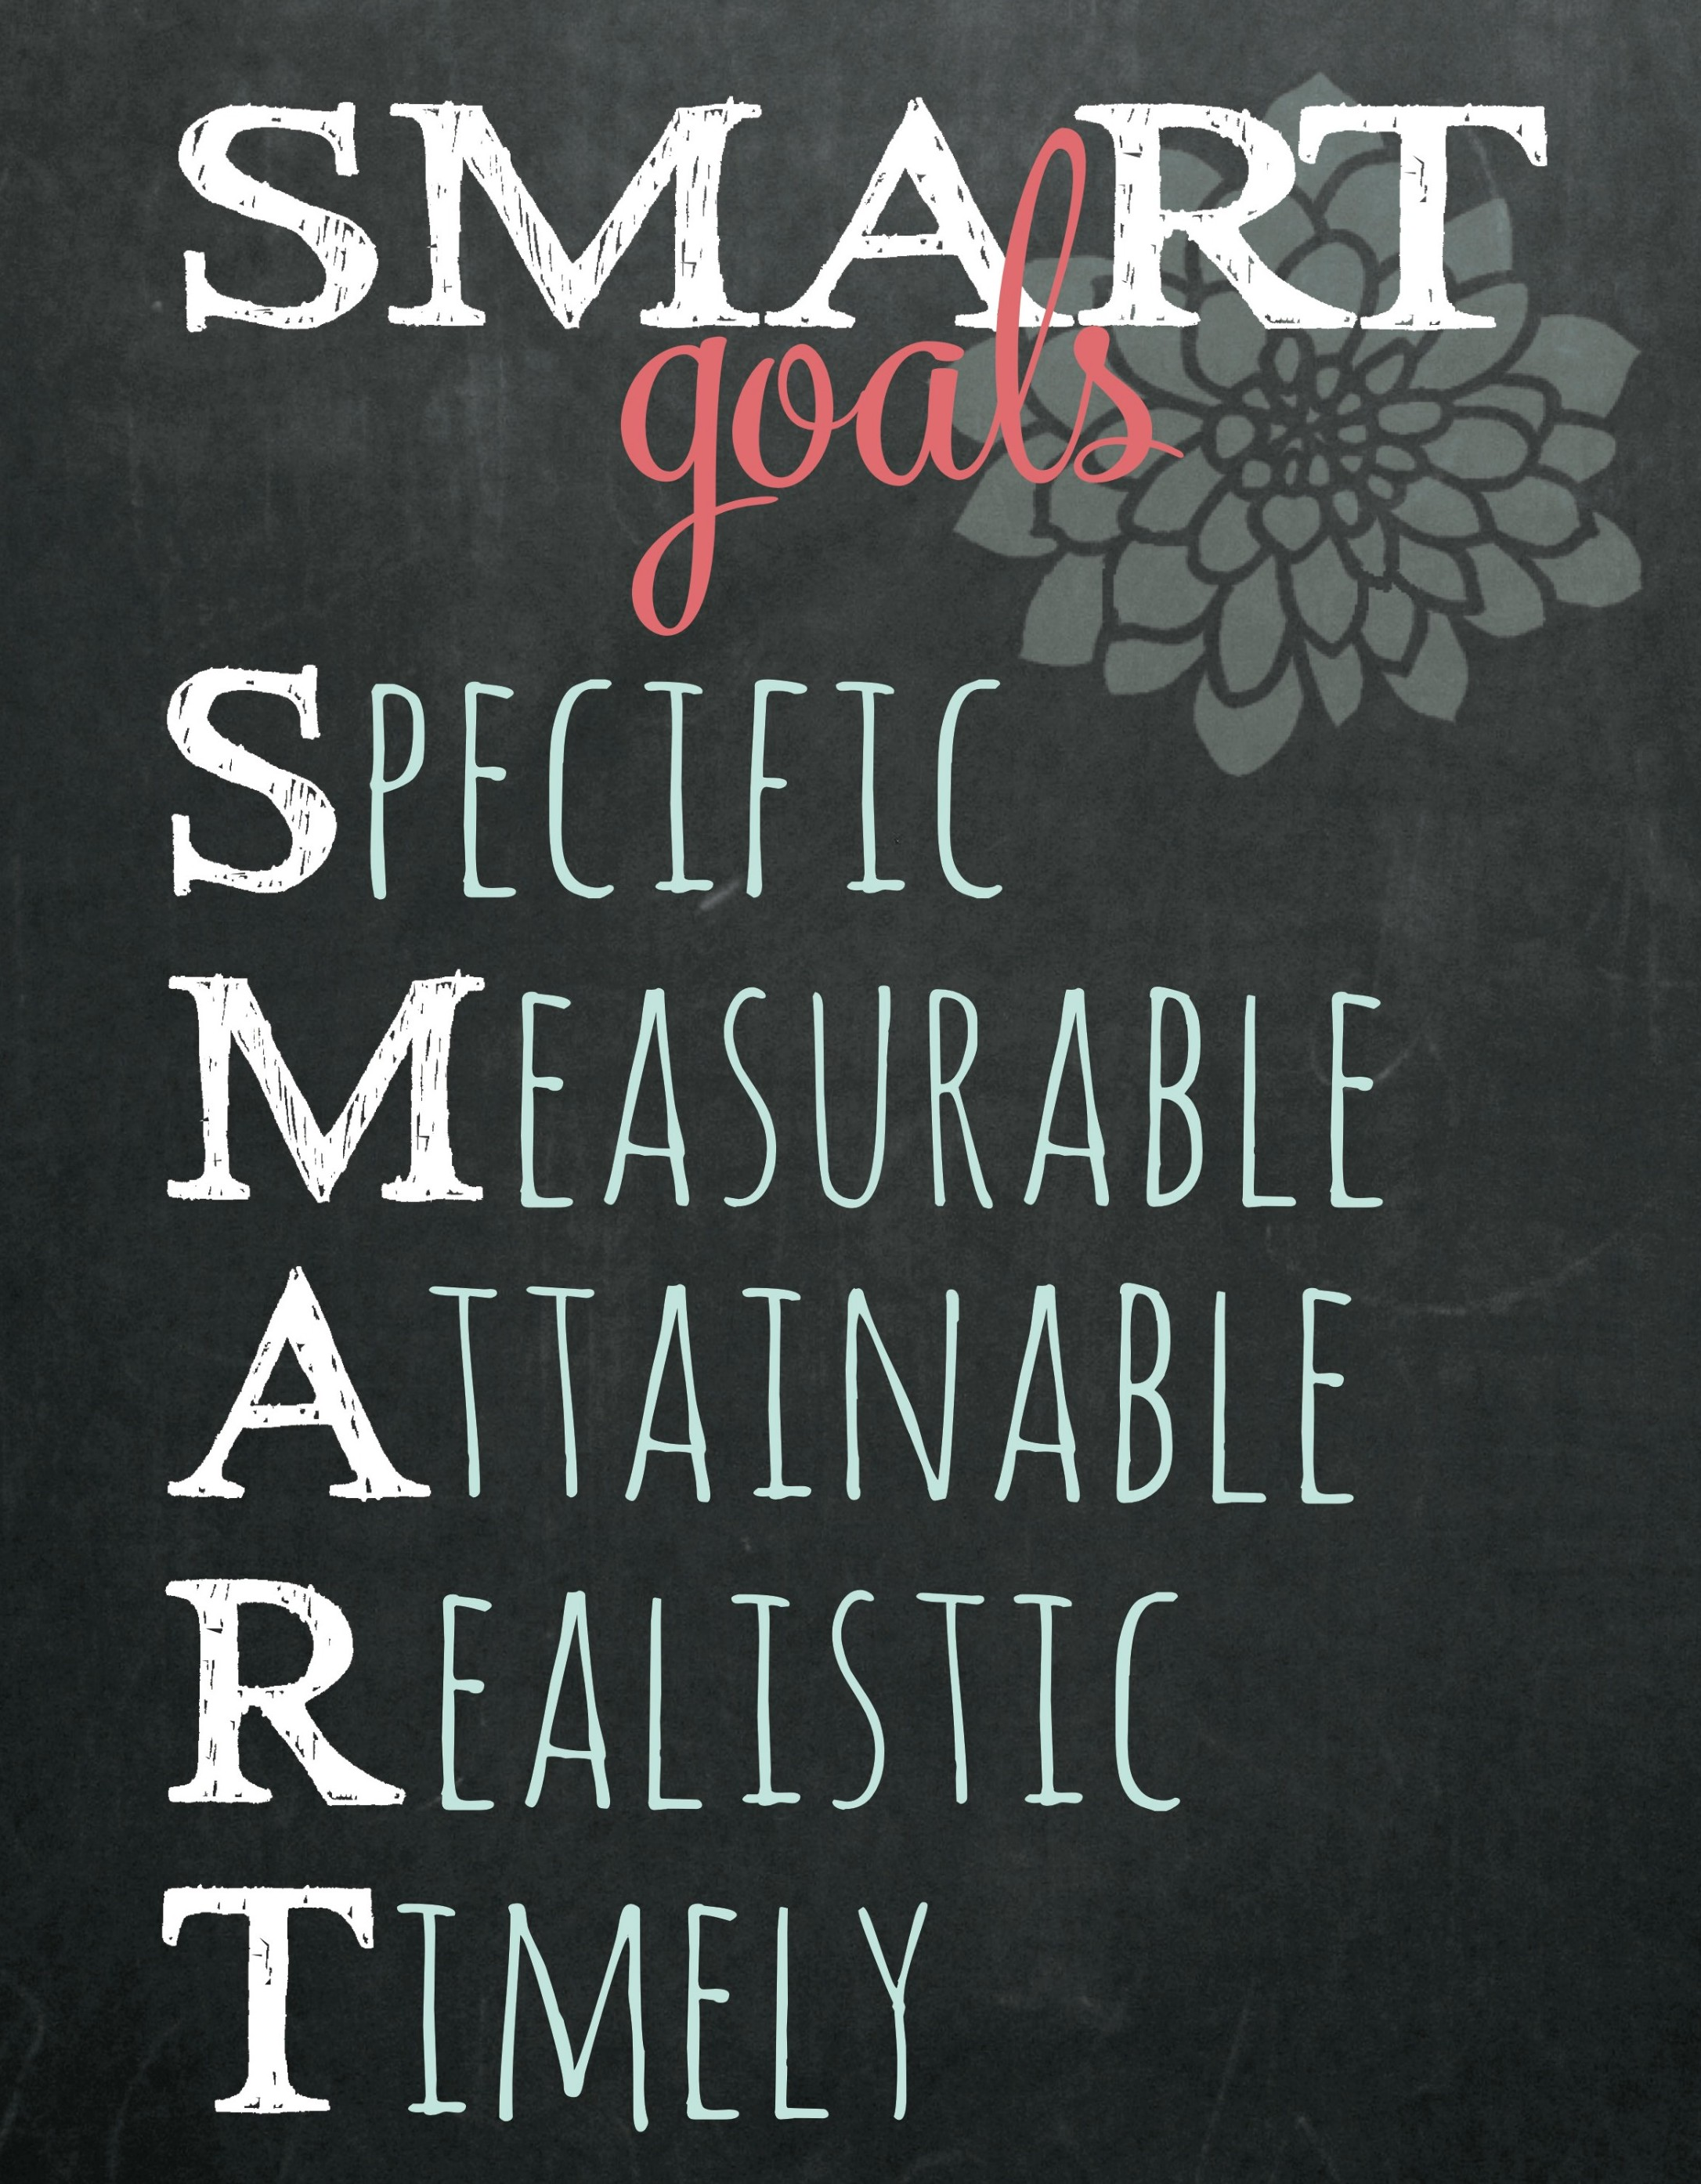 Motivated people set SMART goals that are reachable and helpful.